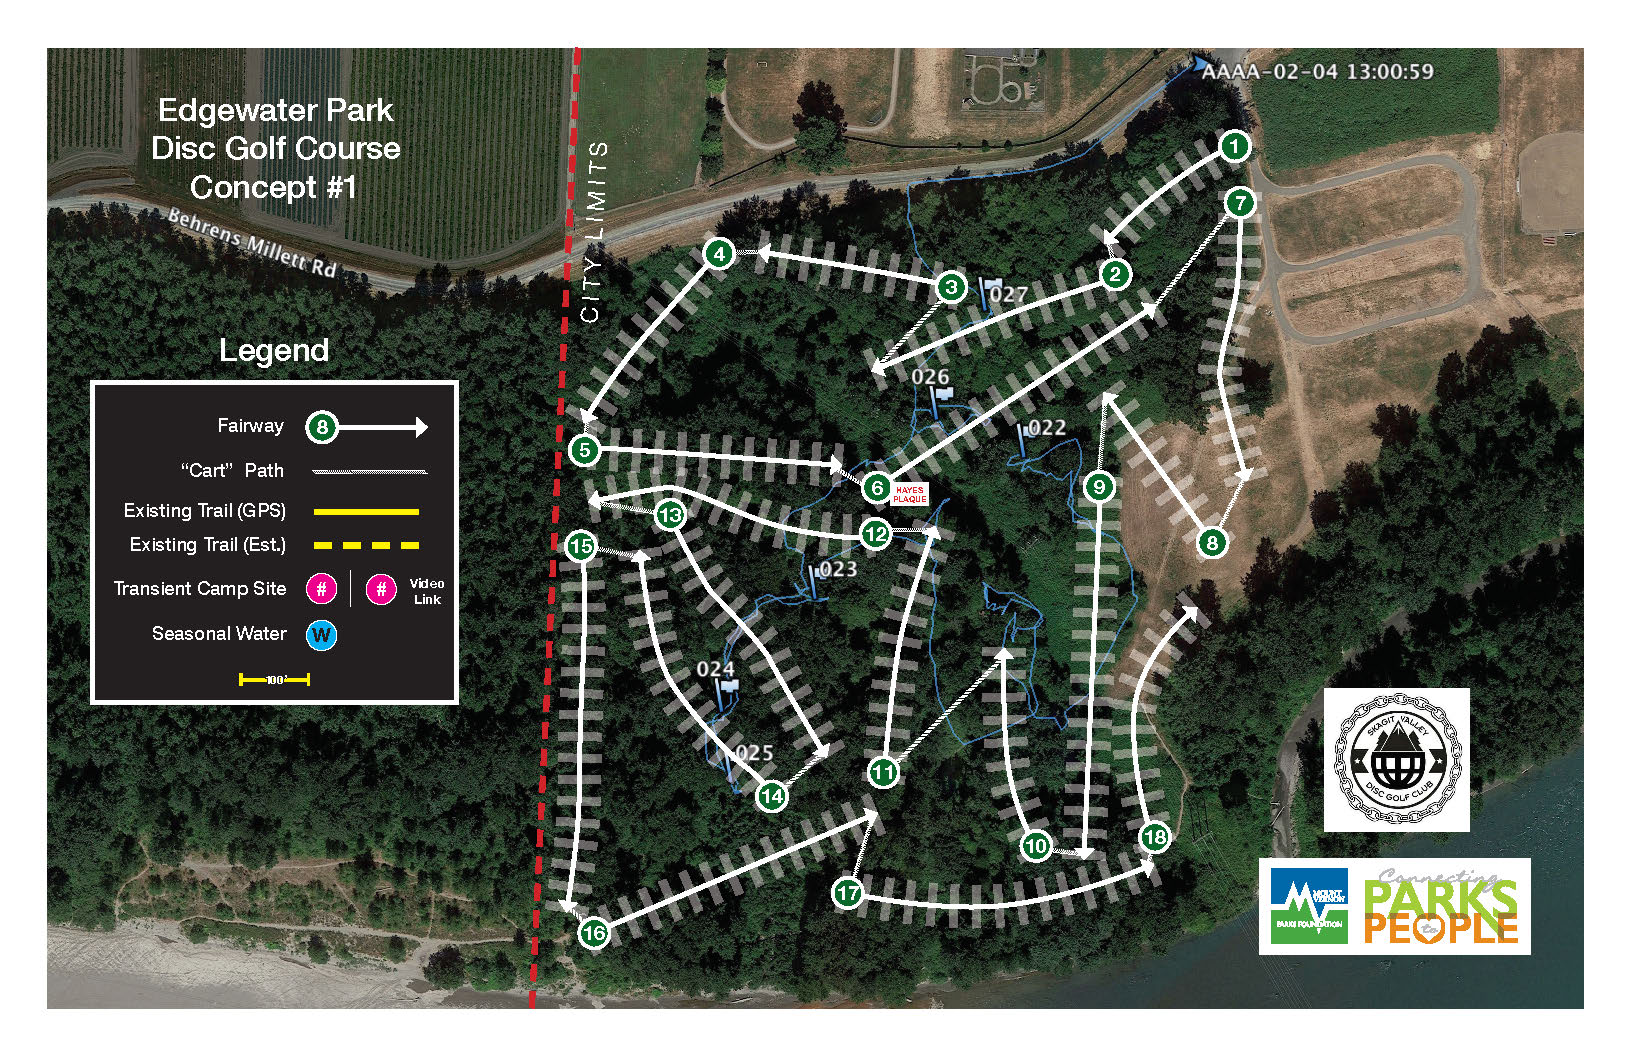 MVPF's conceptual plan for trails and surrounding brush mitigation for walking and disc golf use.